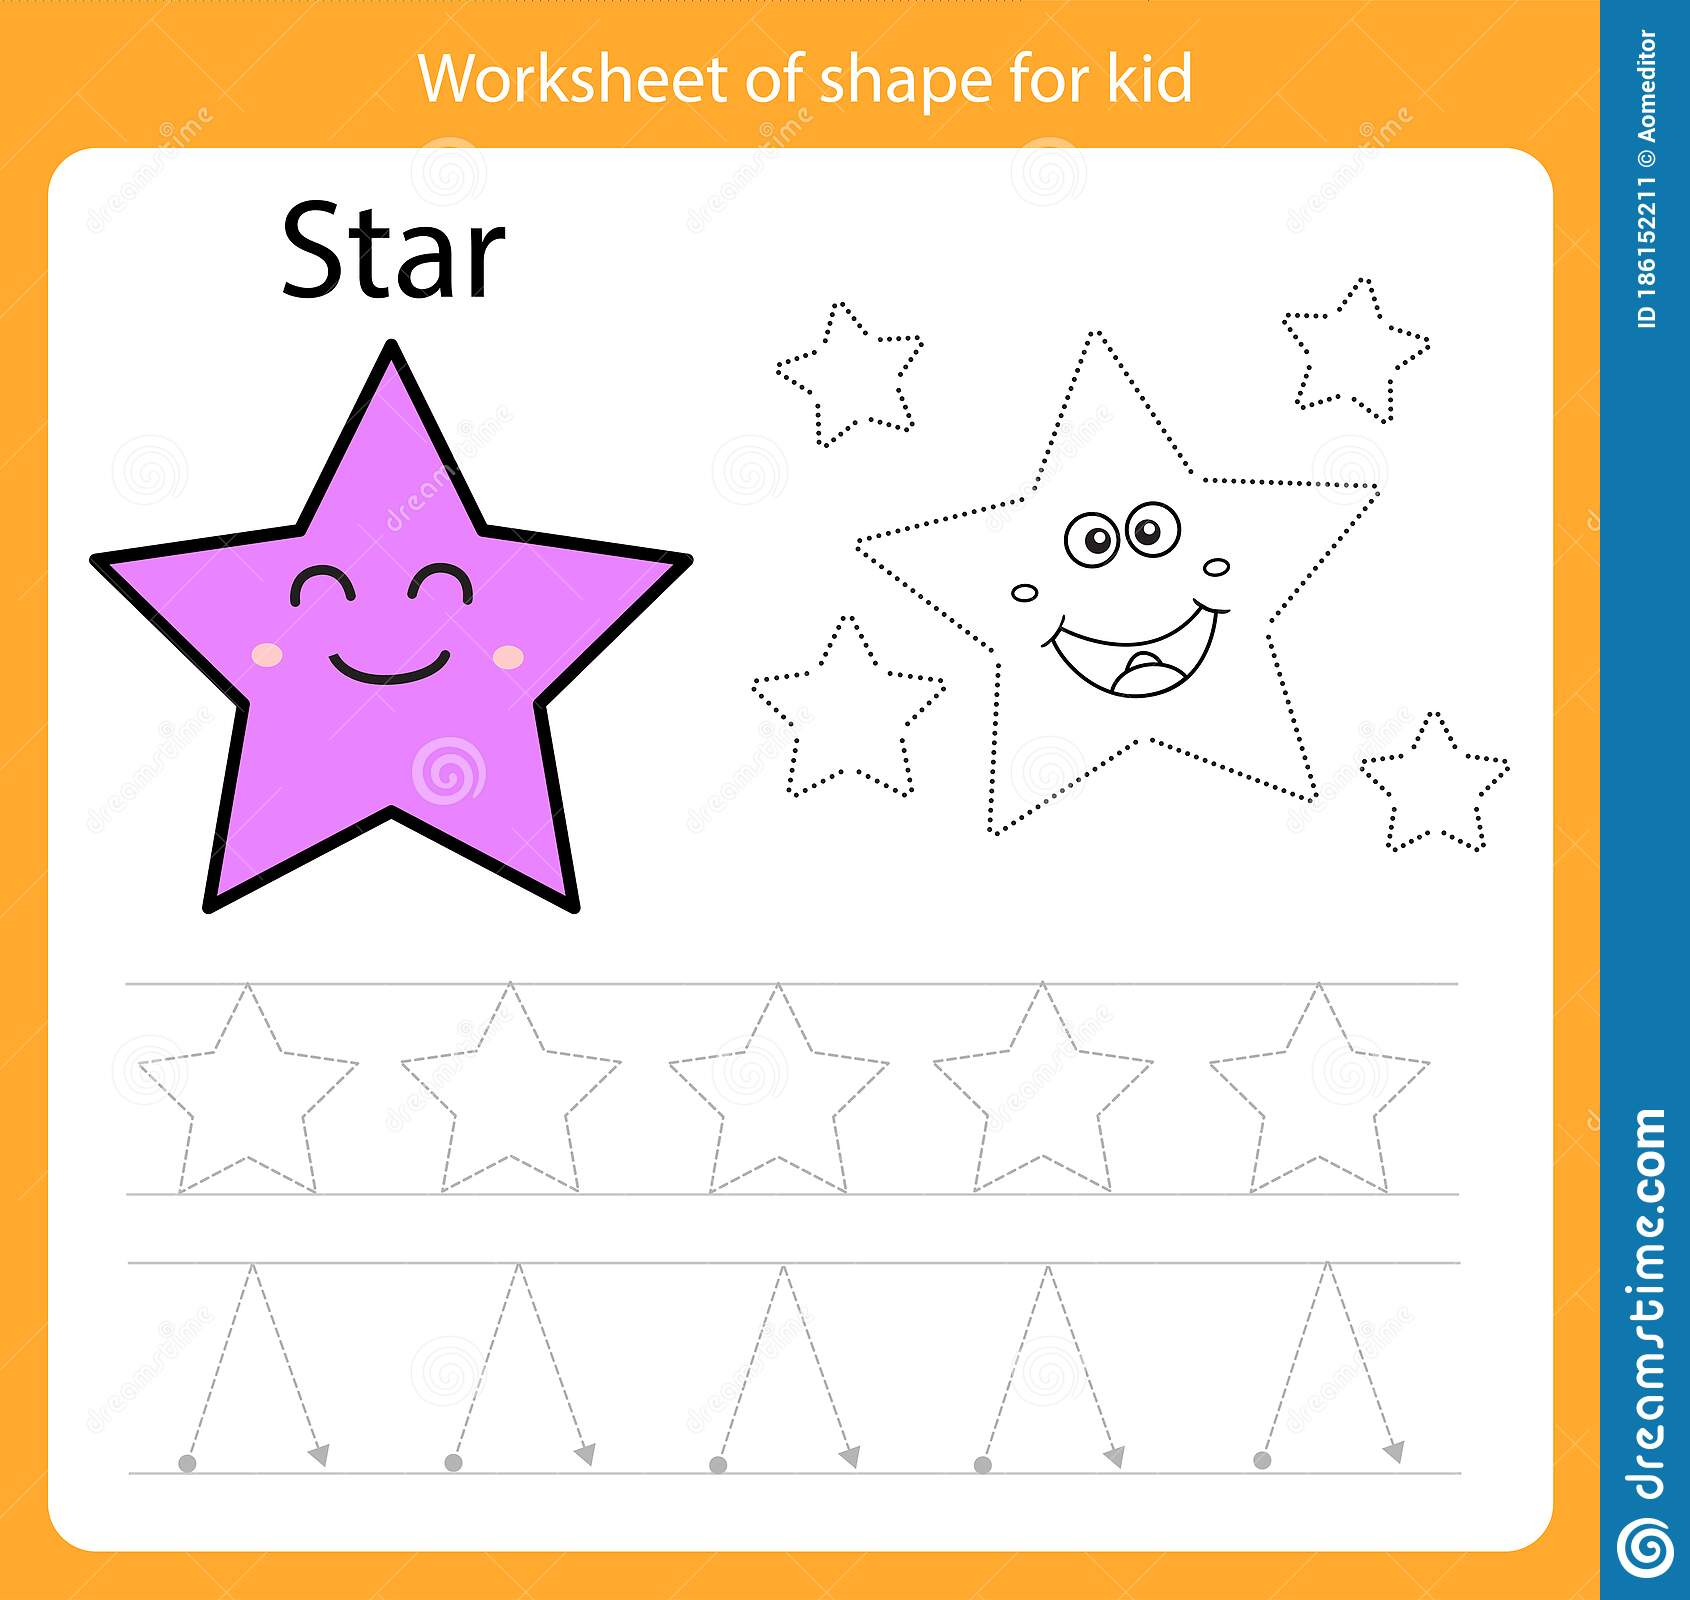 Illustrator Of Worksheet Of Shape For Kid Star Stock